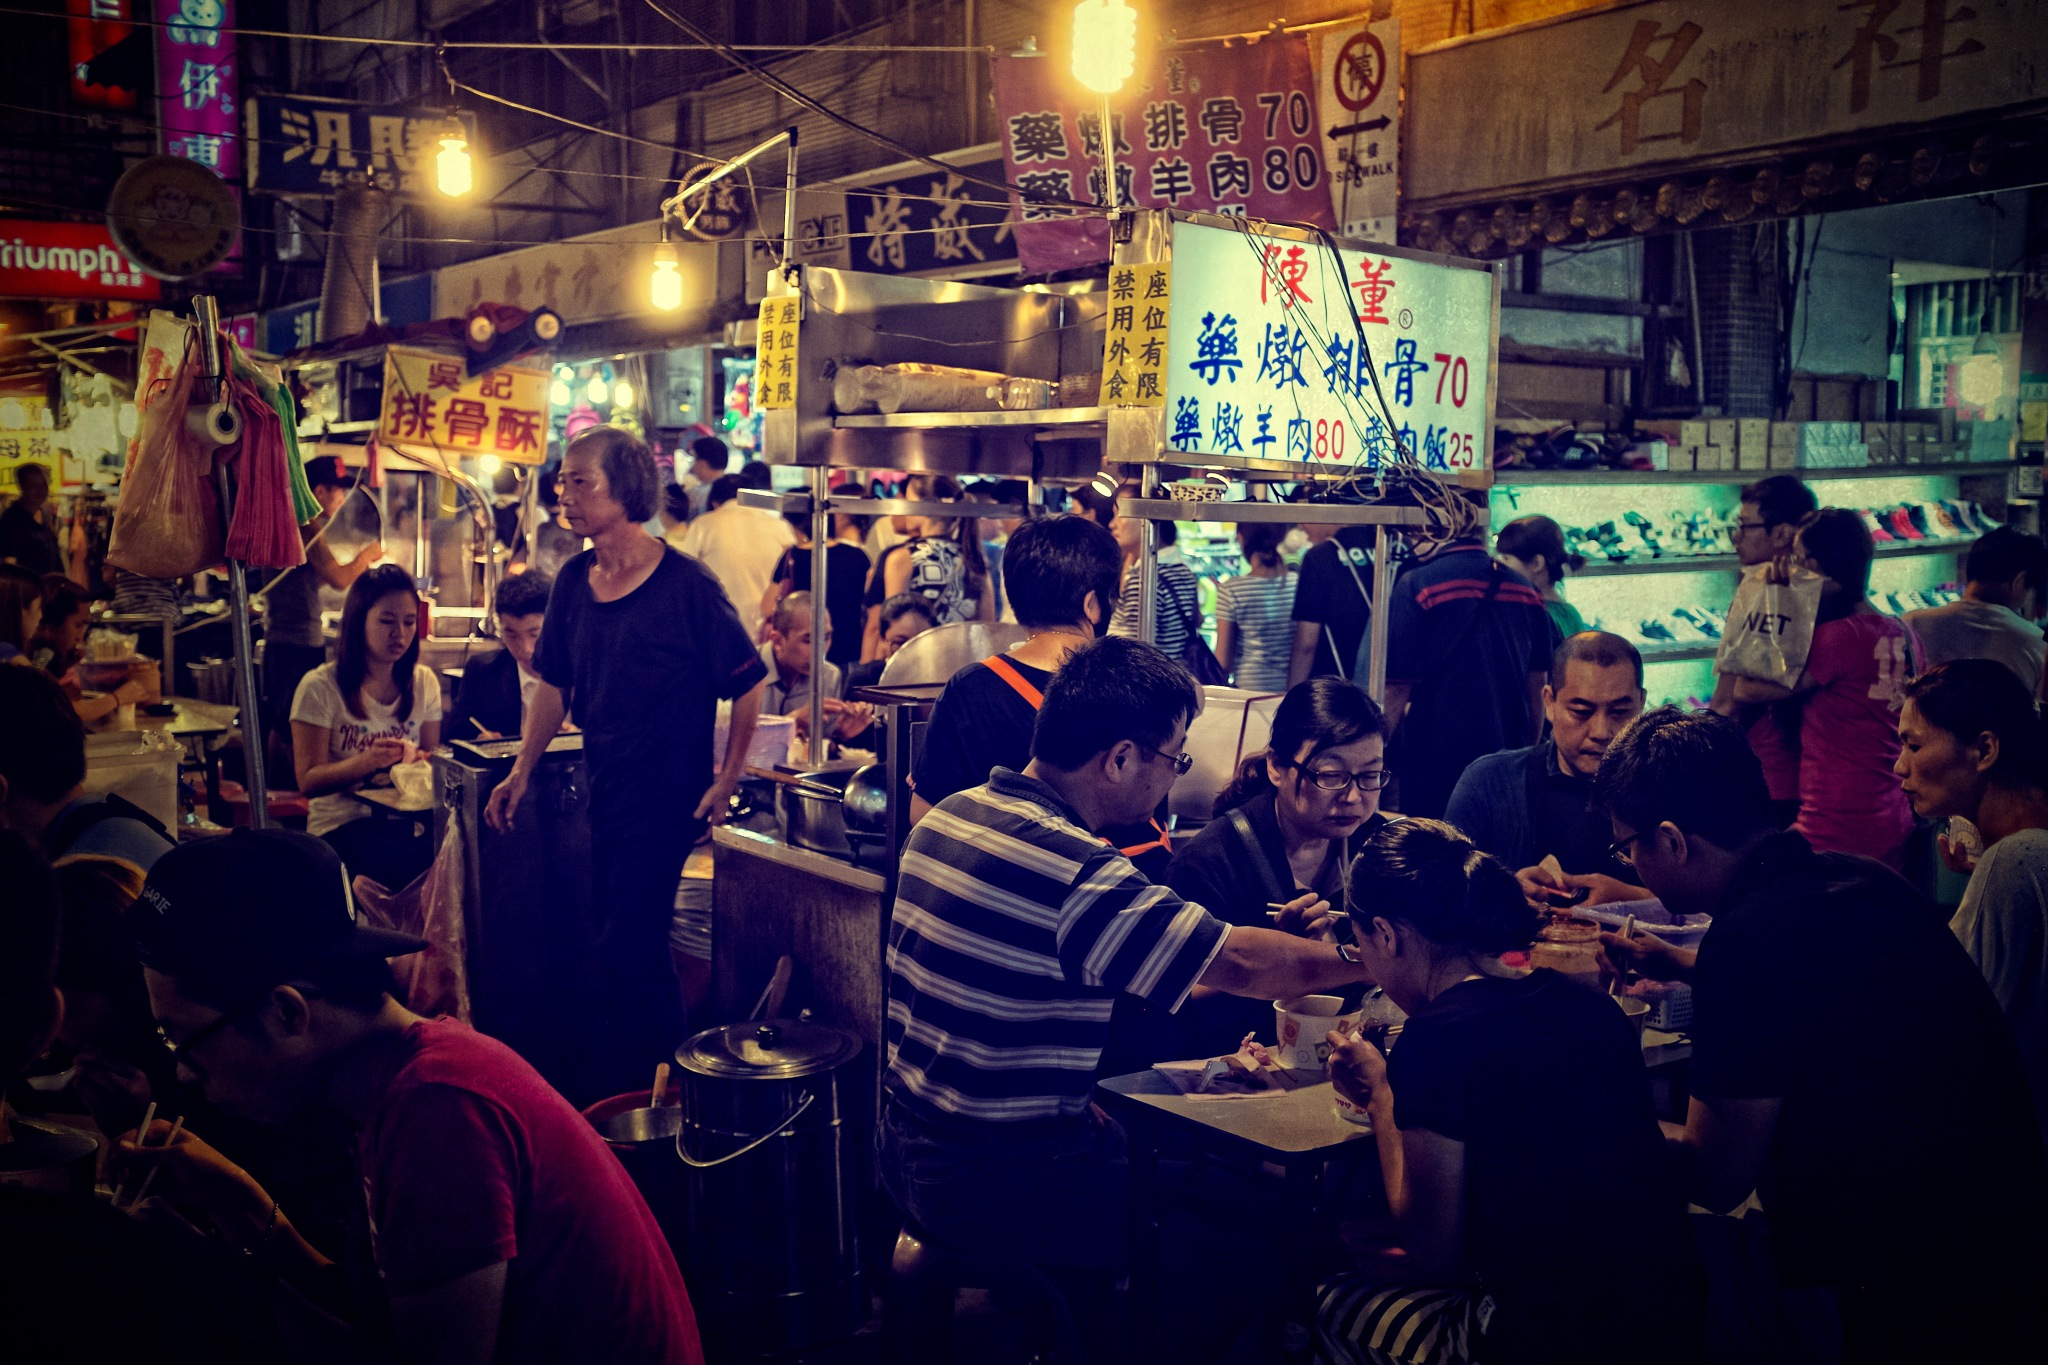 Night market by blindthirdeye